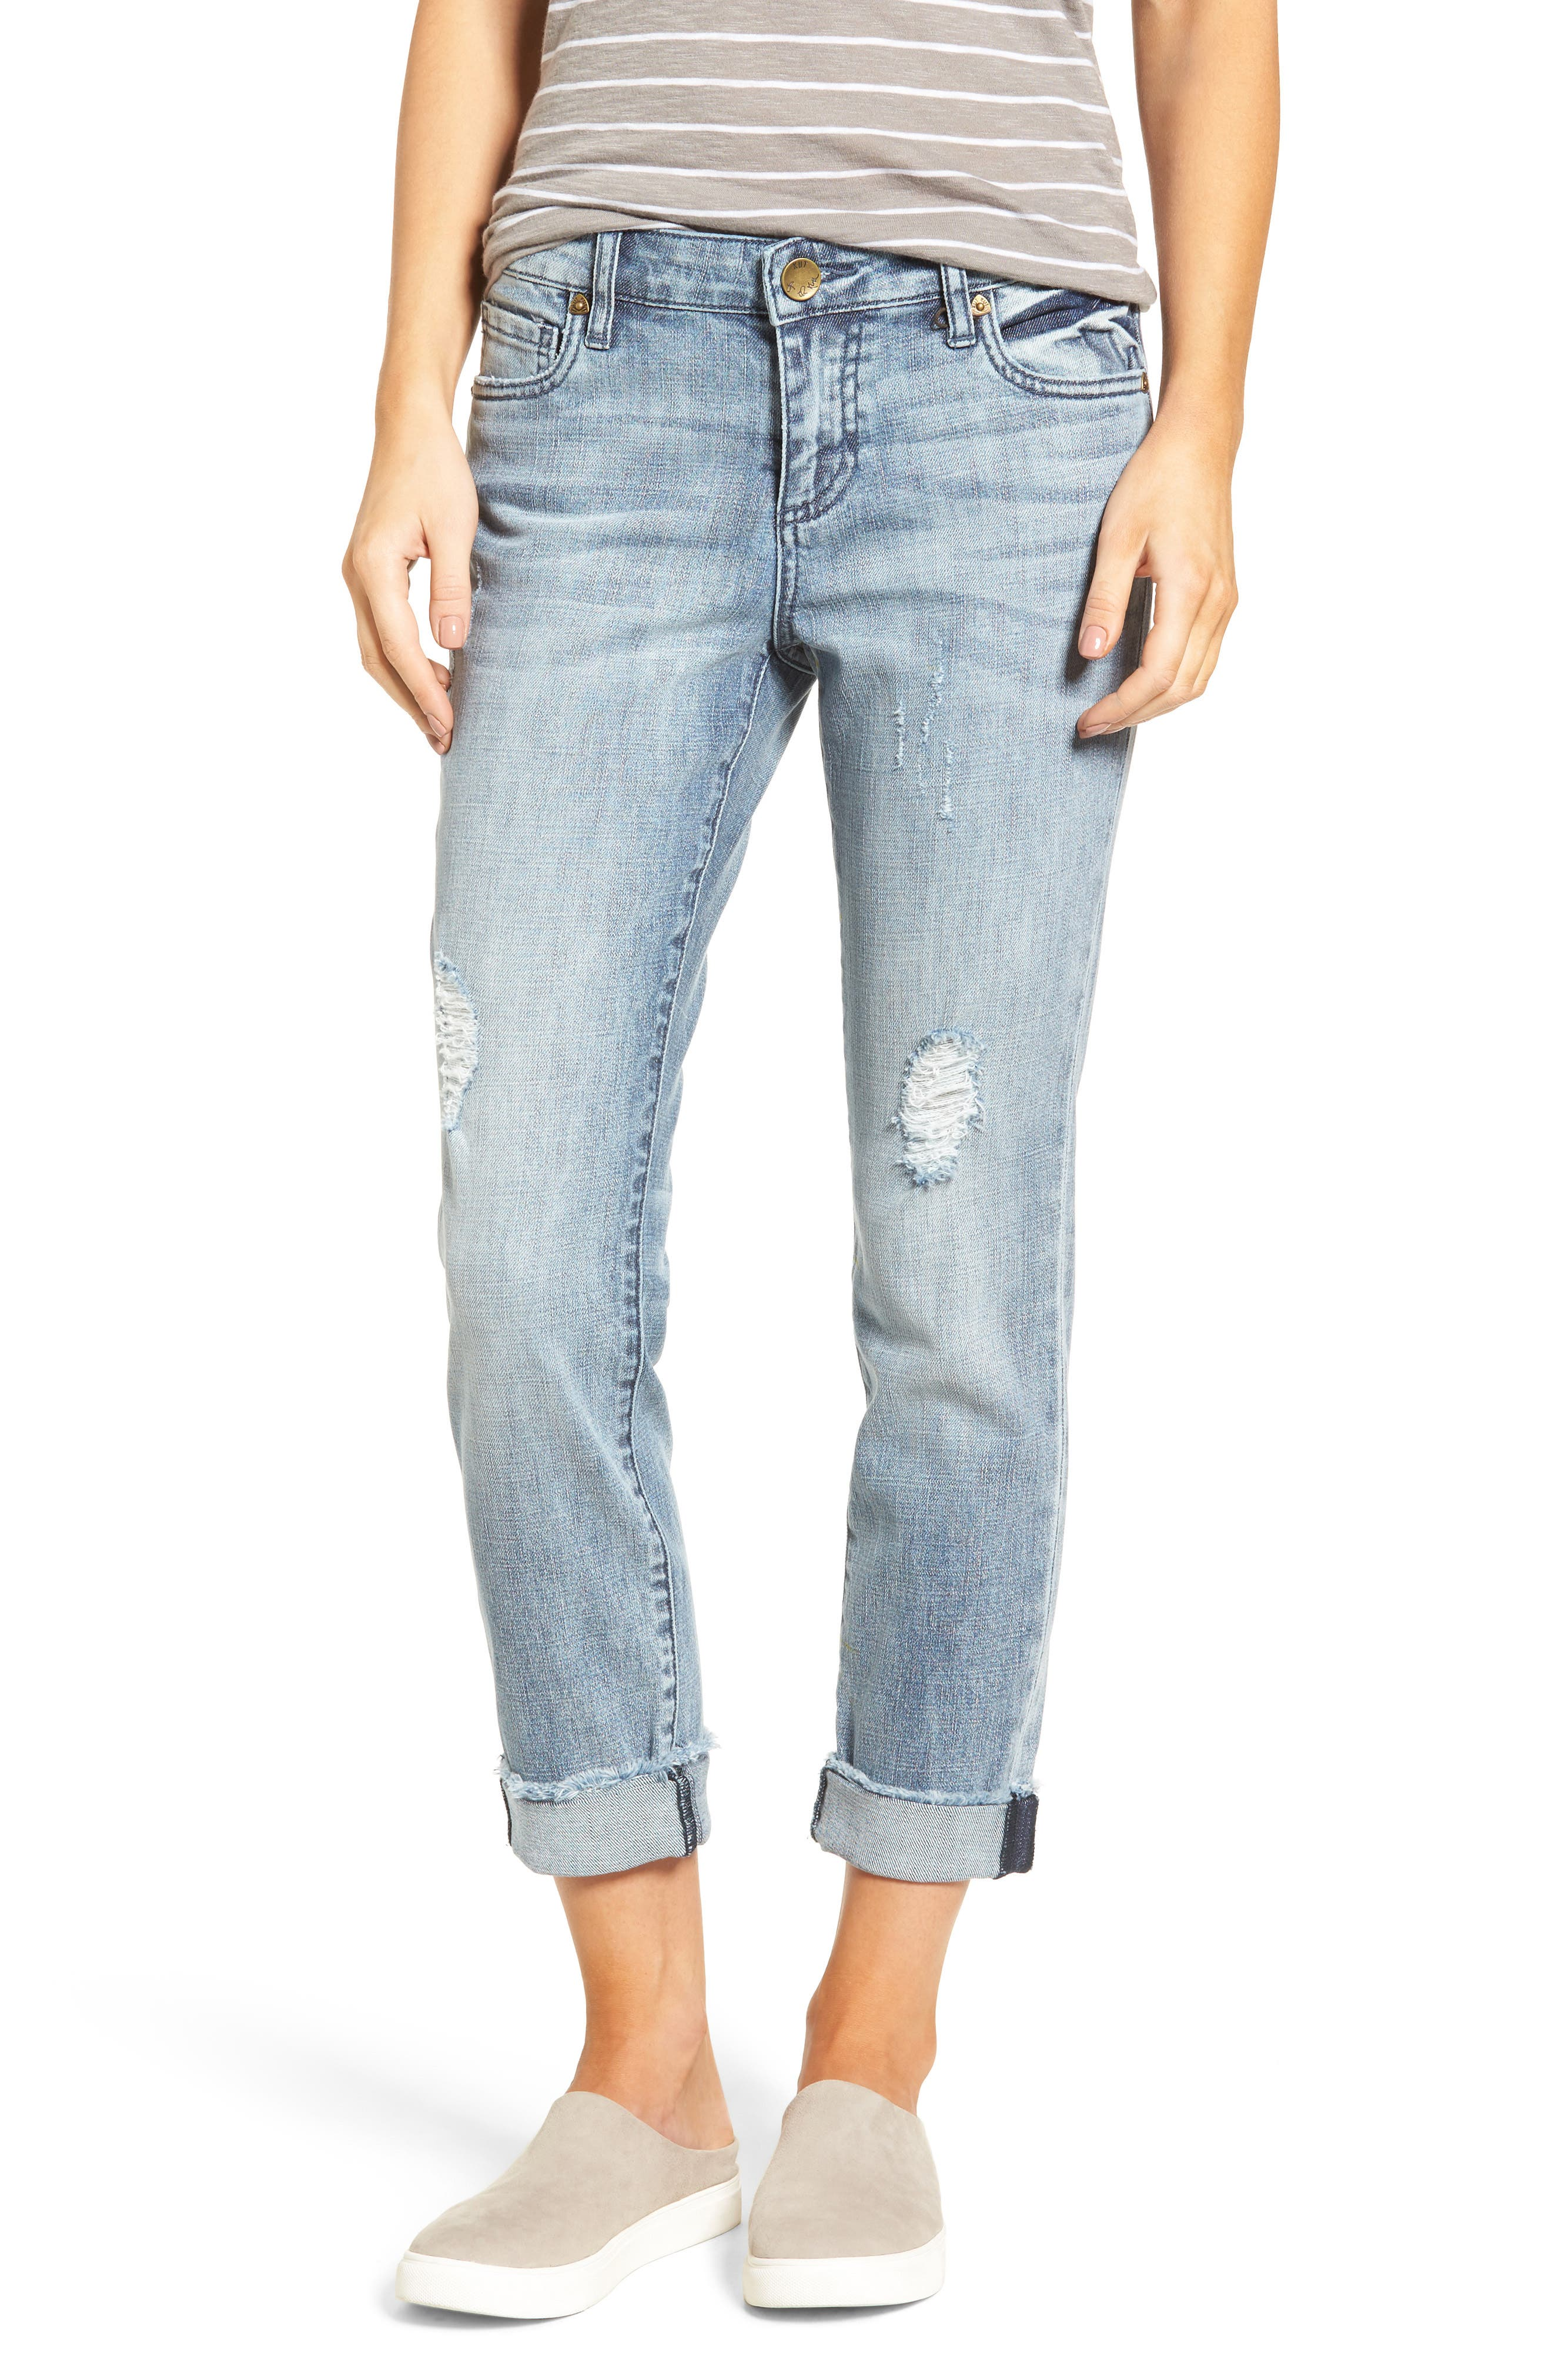 Alternate Image 1 Selected - KUT from the Kloth Catherine Distressed Frayed Hem Boyfriend Jeans (Heartiness)